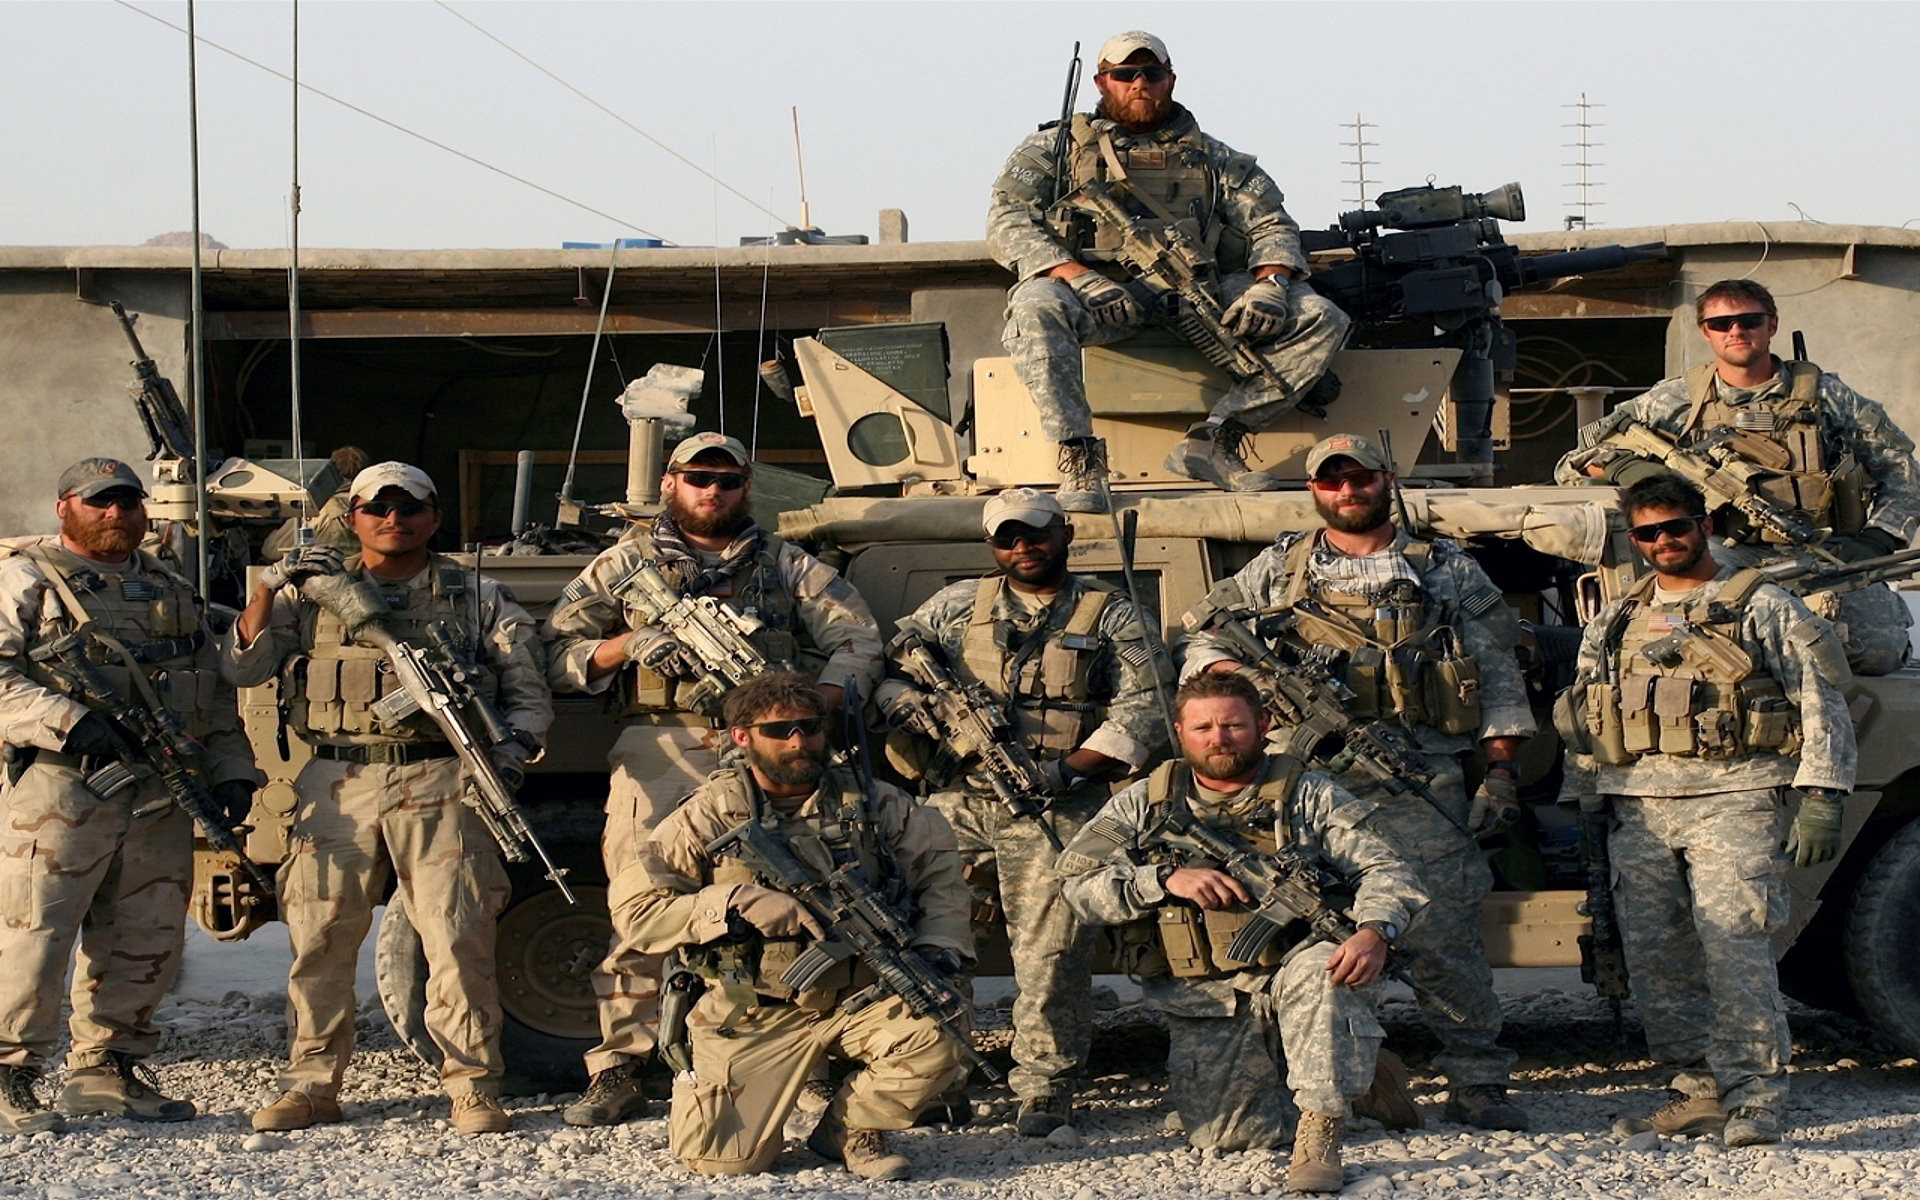 1920x1200 US Army Special Forces, Afghanistan